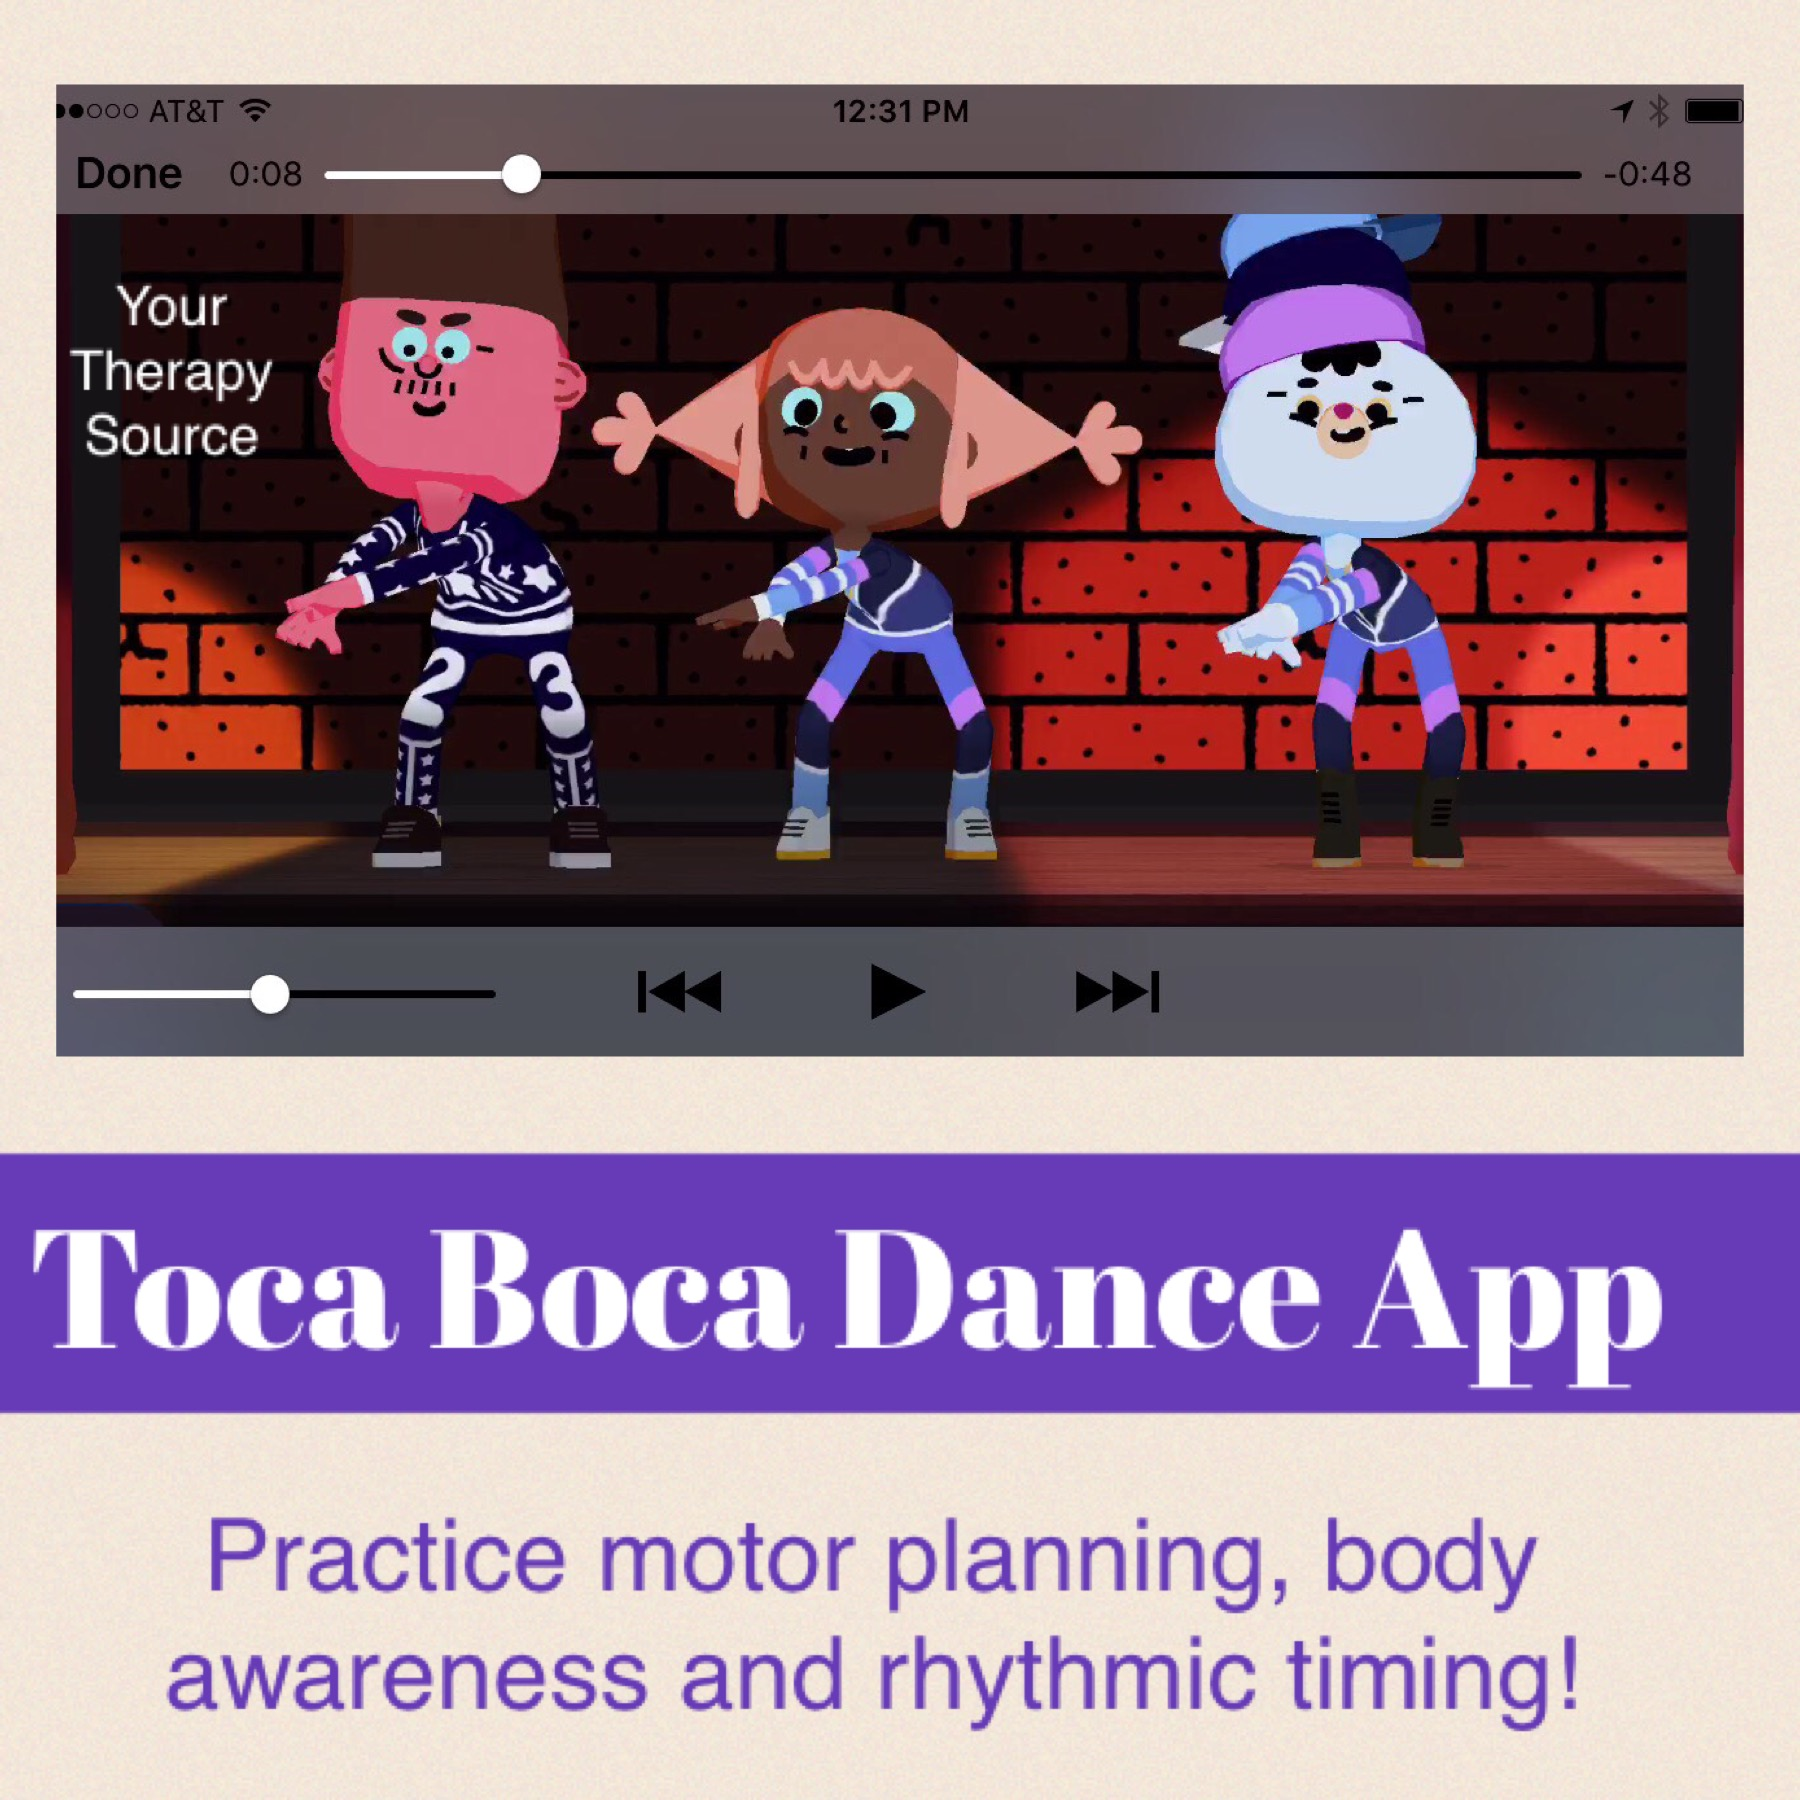 Toca Boca Dance App Your Therapy Source Review